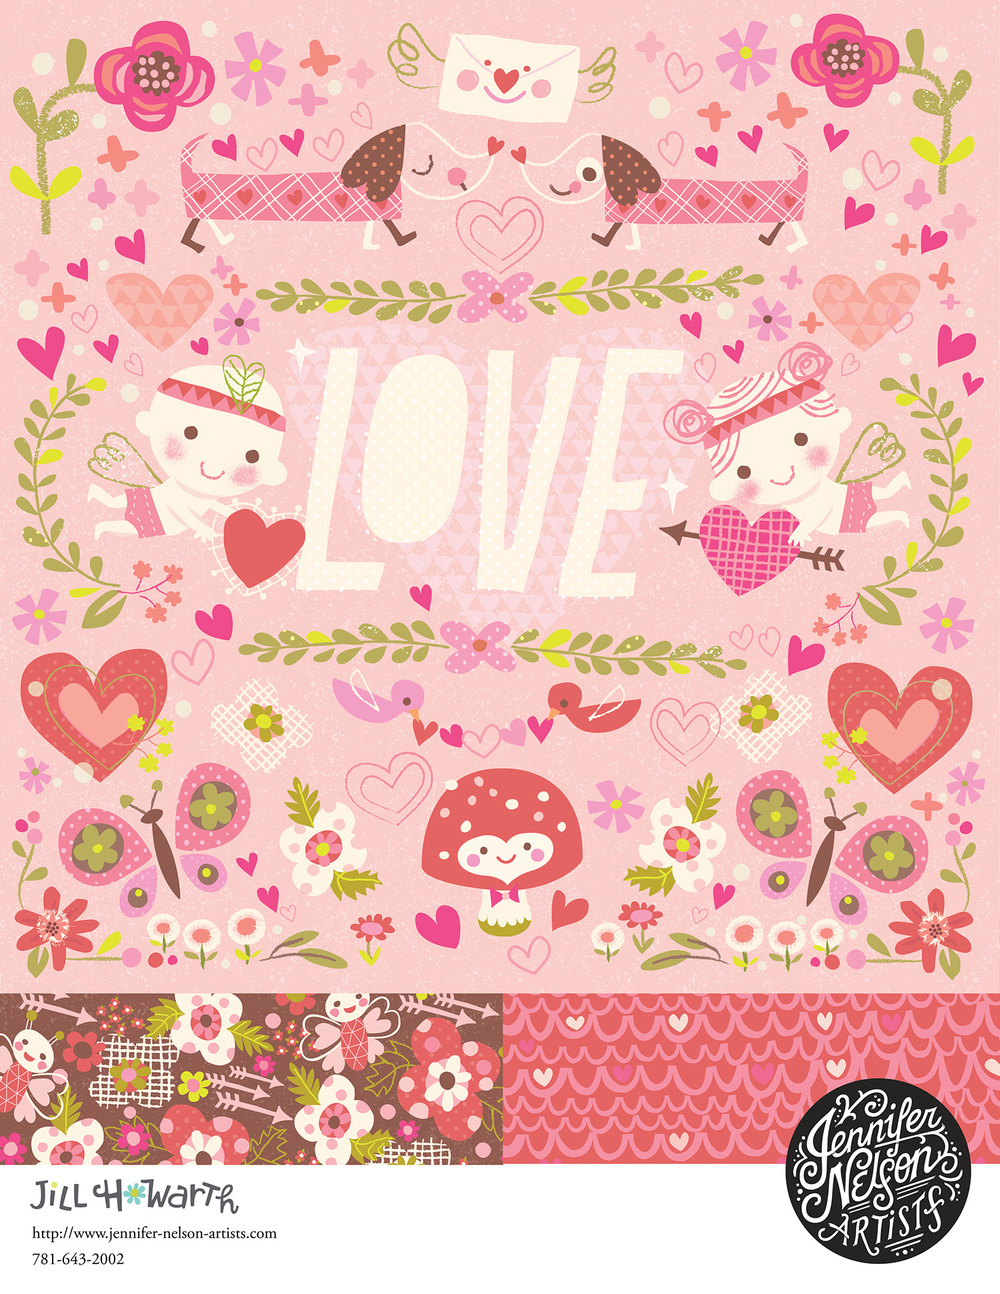 jillhowarth_PP_happy_happy_valentine